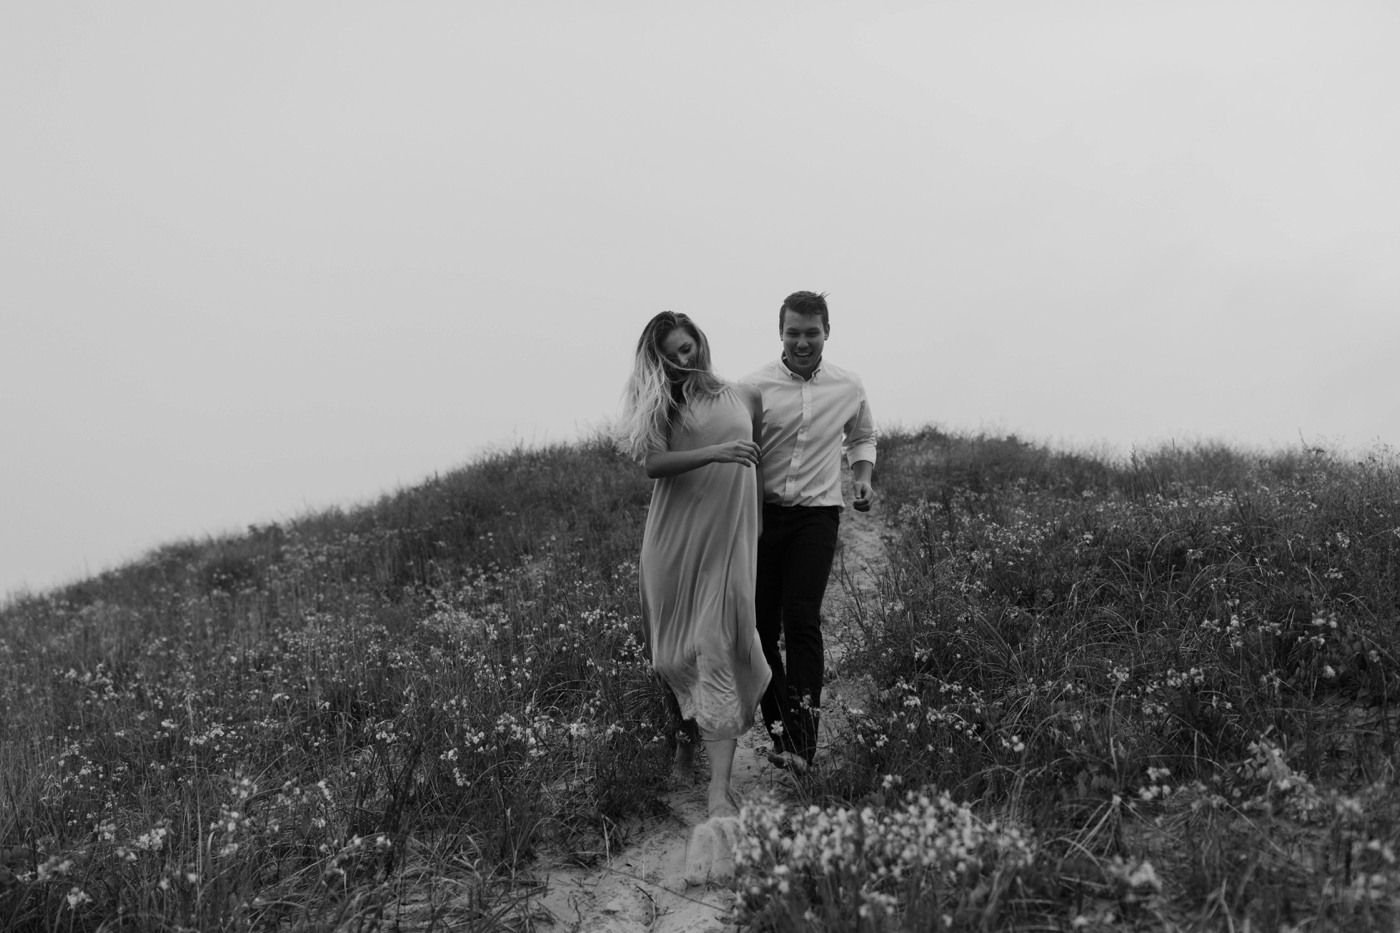 Sleeping_Bear_Dunes_Couples_Adventure_Session_Adventure_Wedding_Photographer_Hiking_with_Heels_Brett+Emily-35.jpg